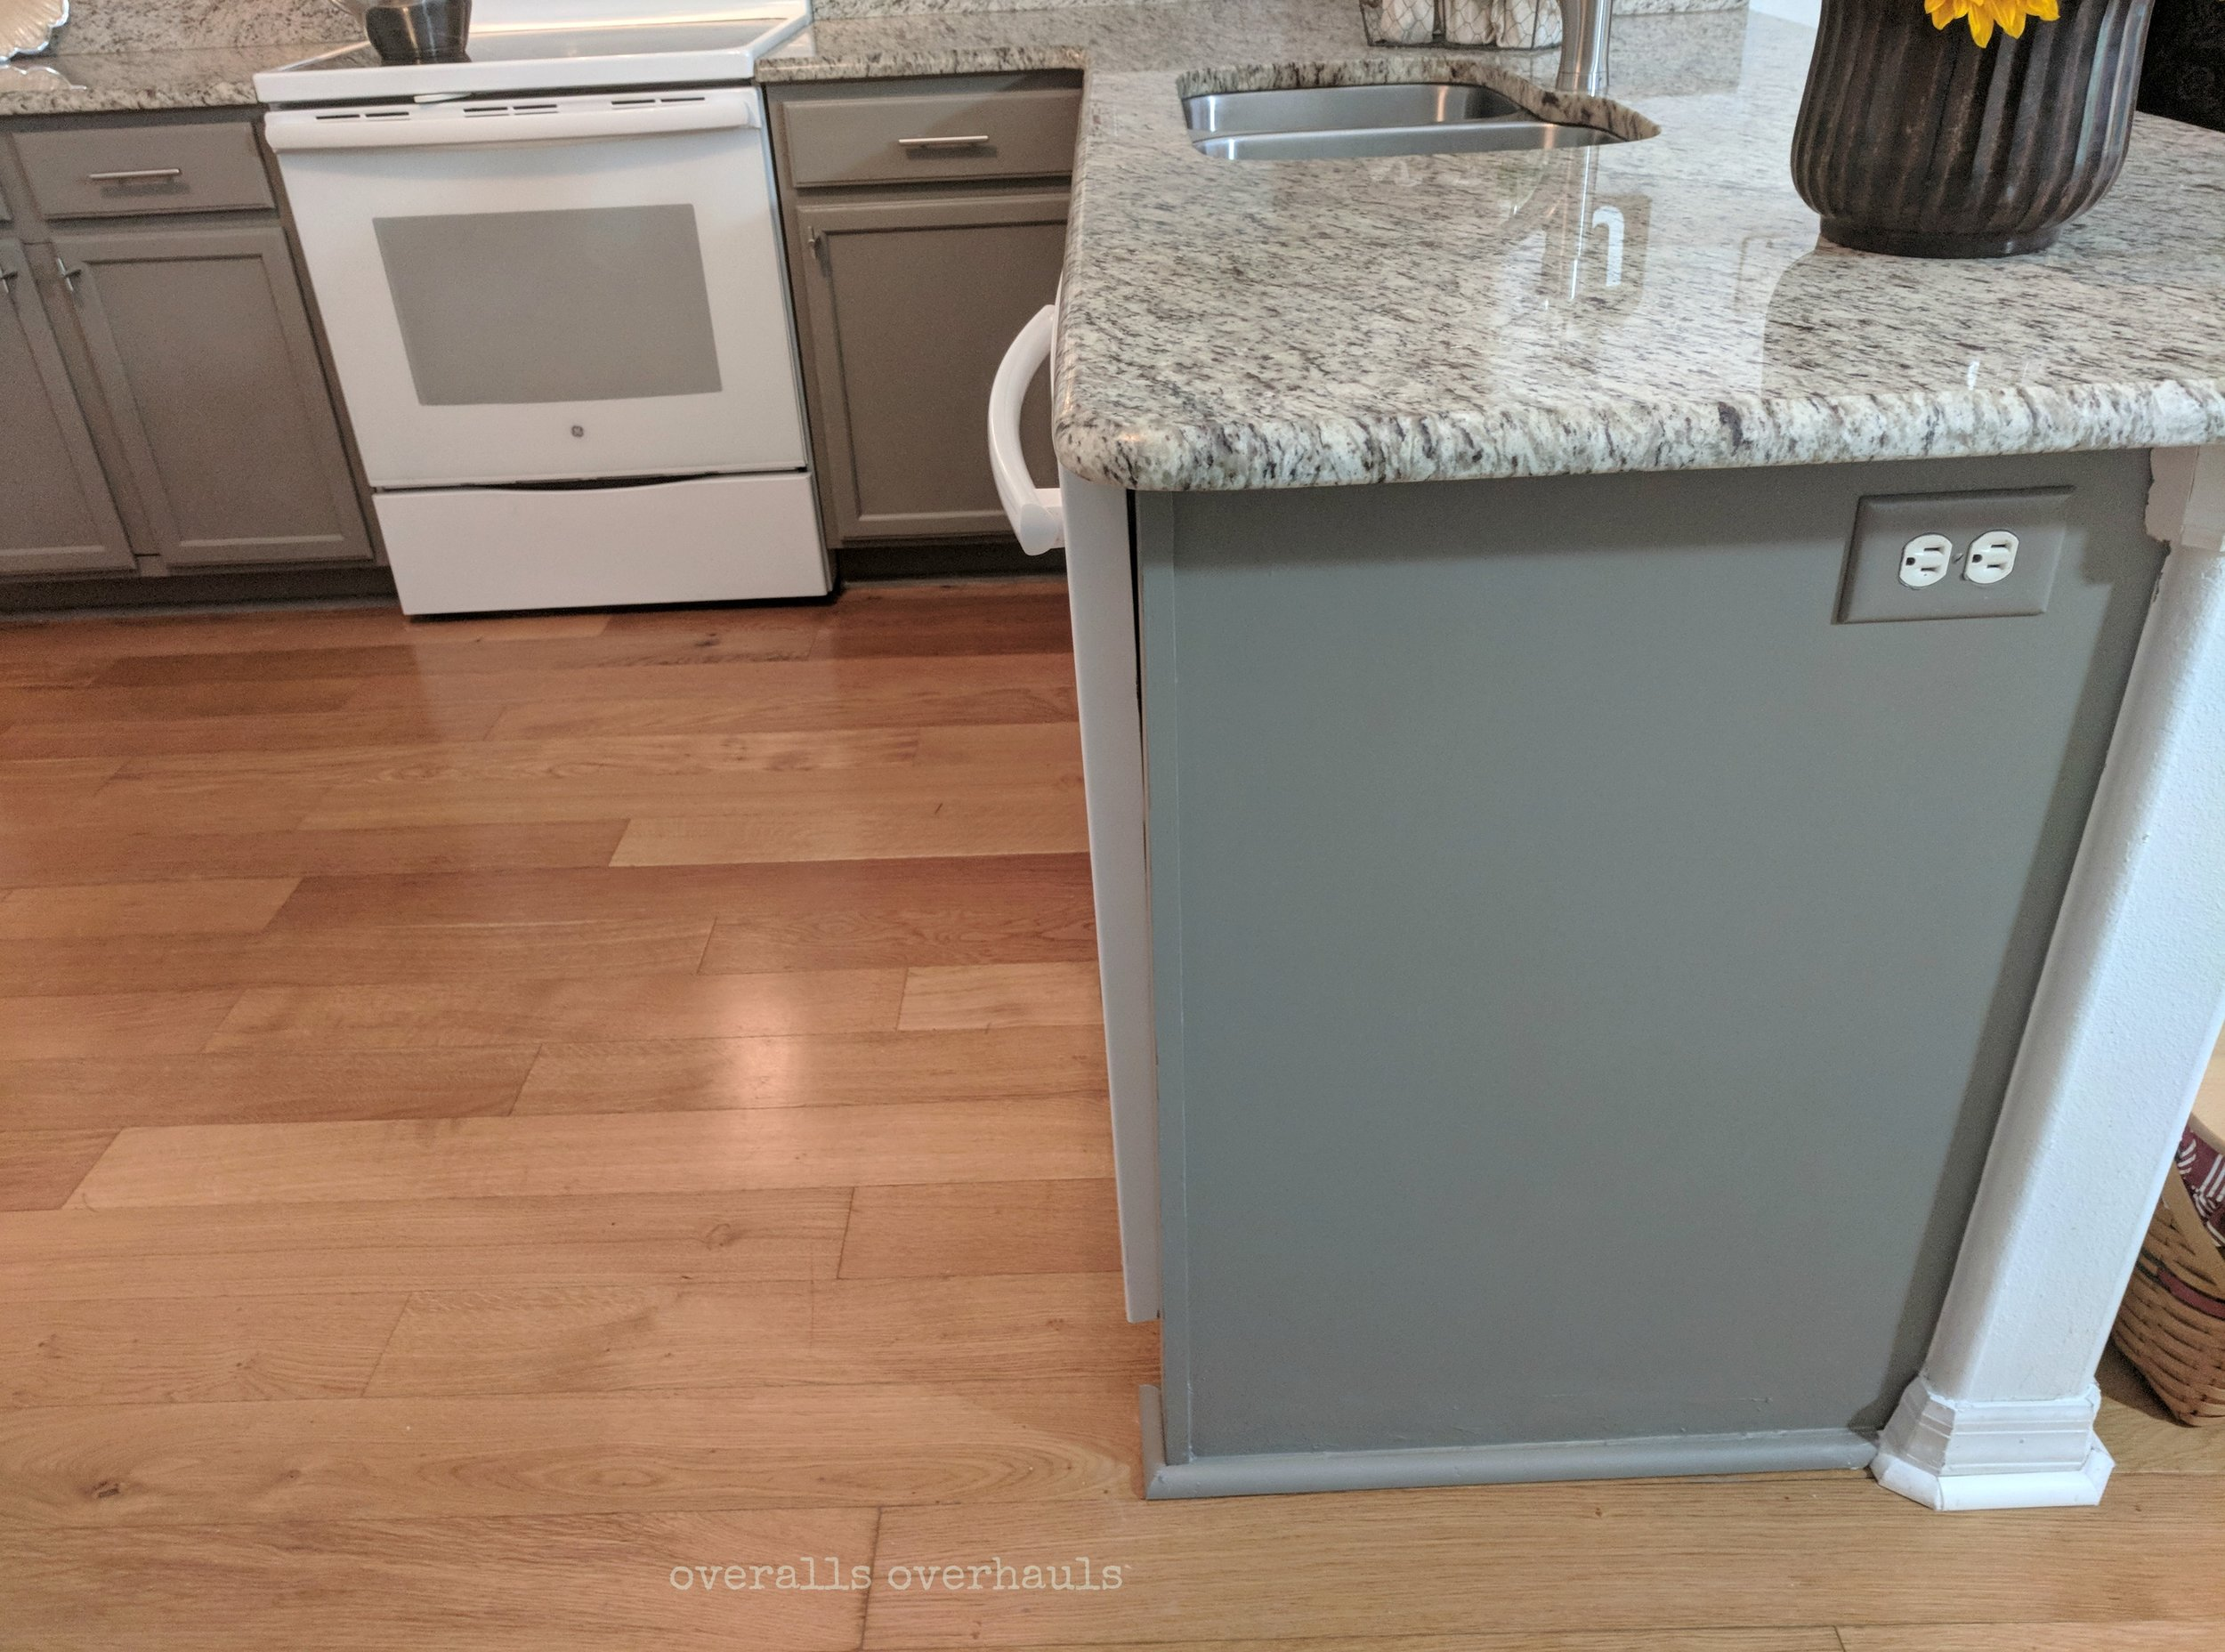 We repaired some old water damage on the floor and added new molding on this end panel.